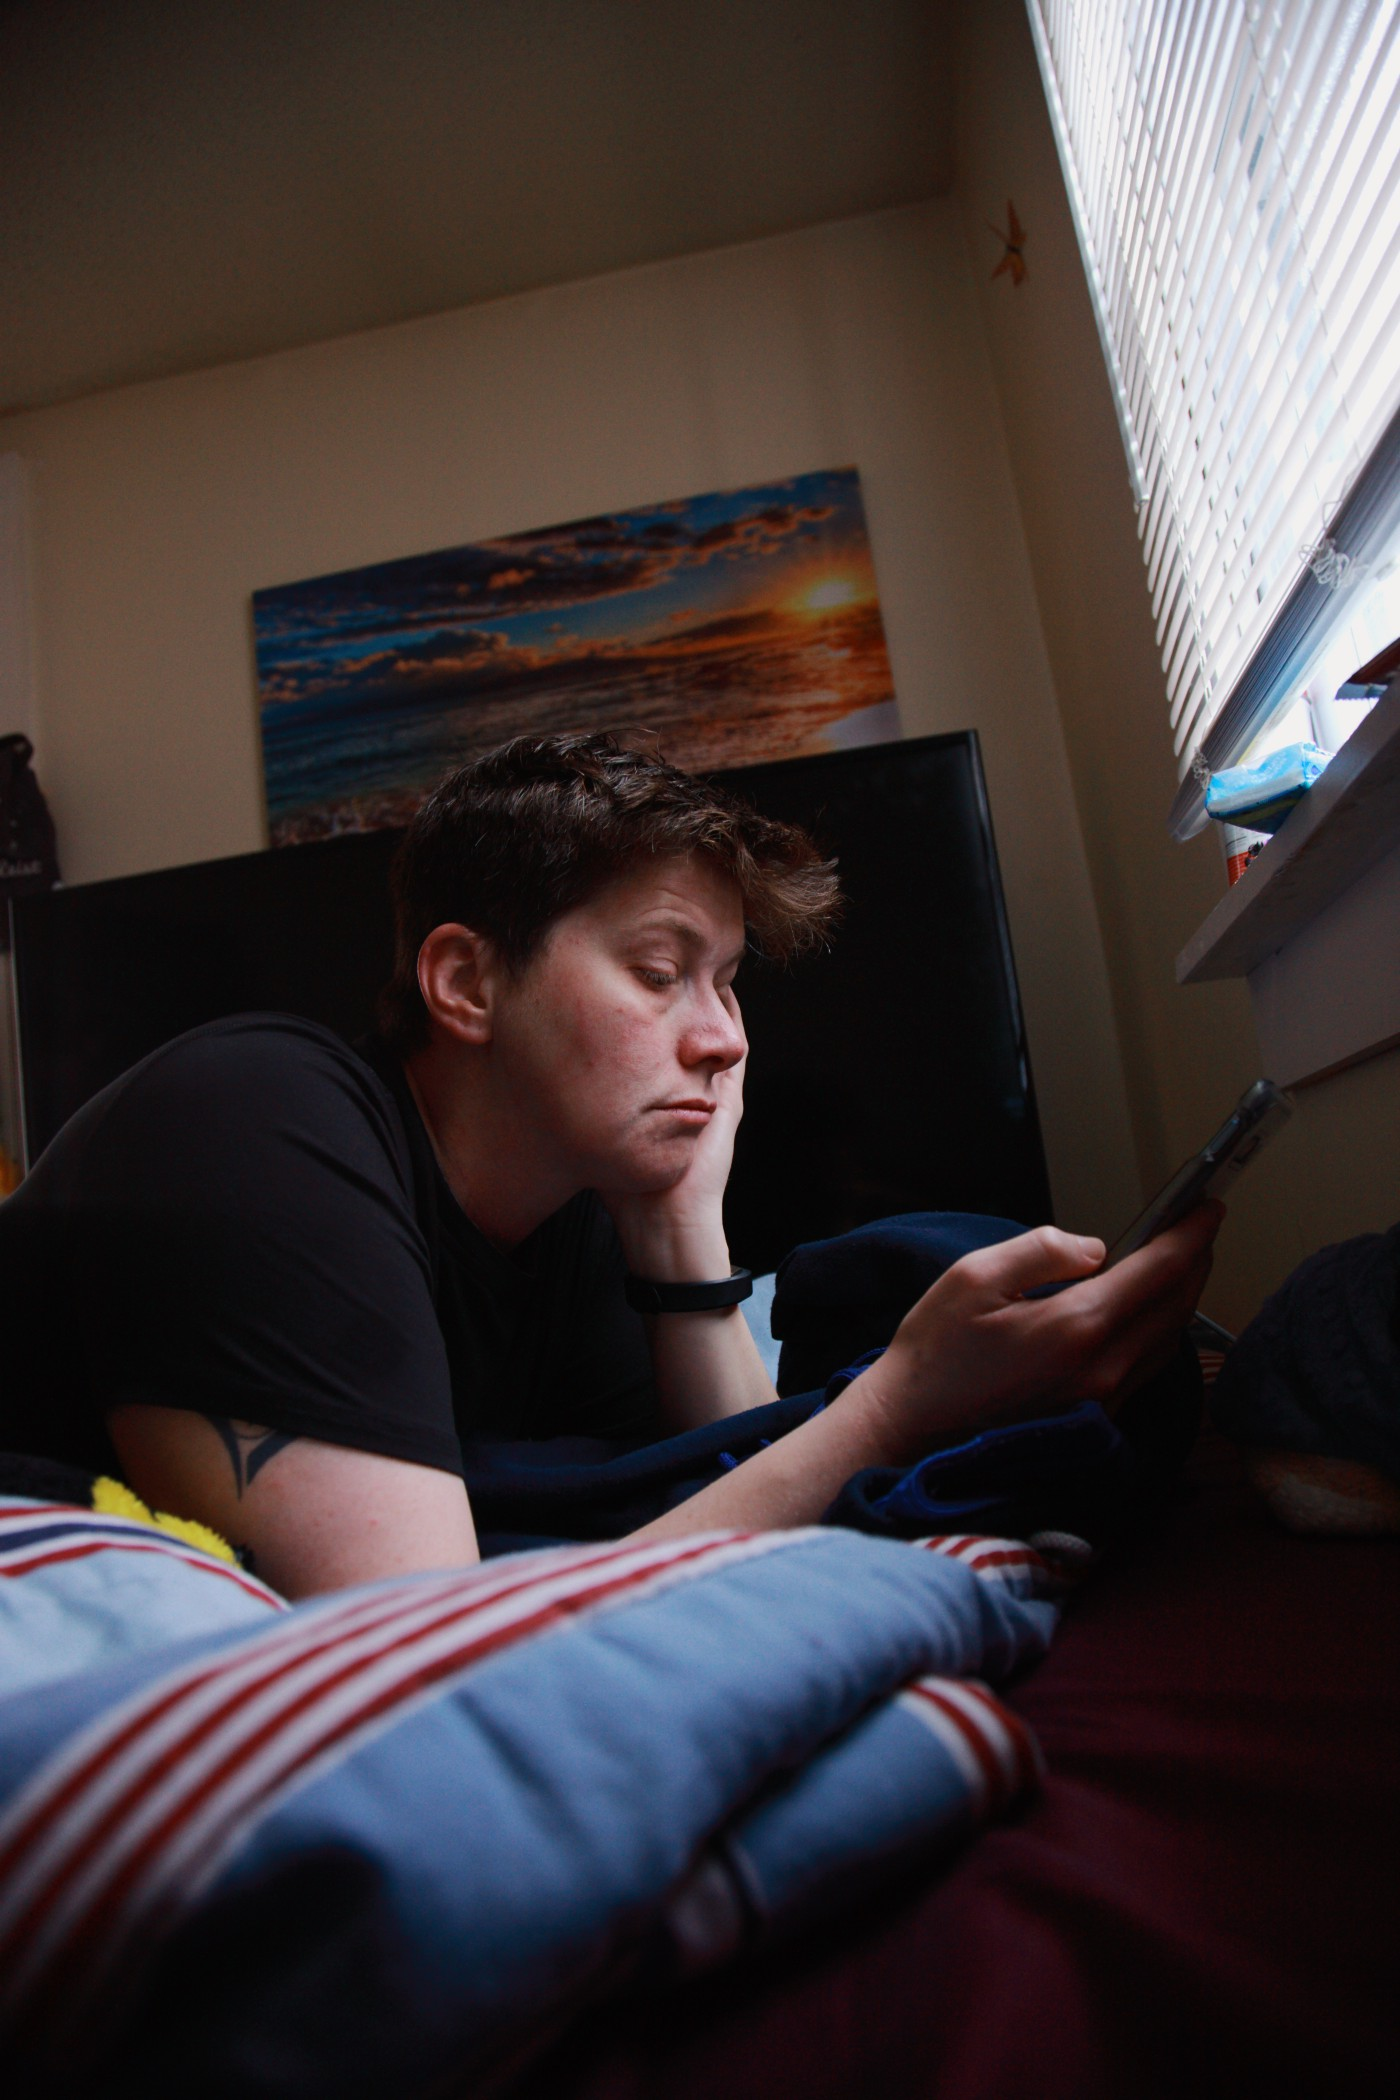 A person lays on their bed, staring at a mobile device, looking sullen.